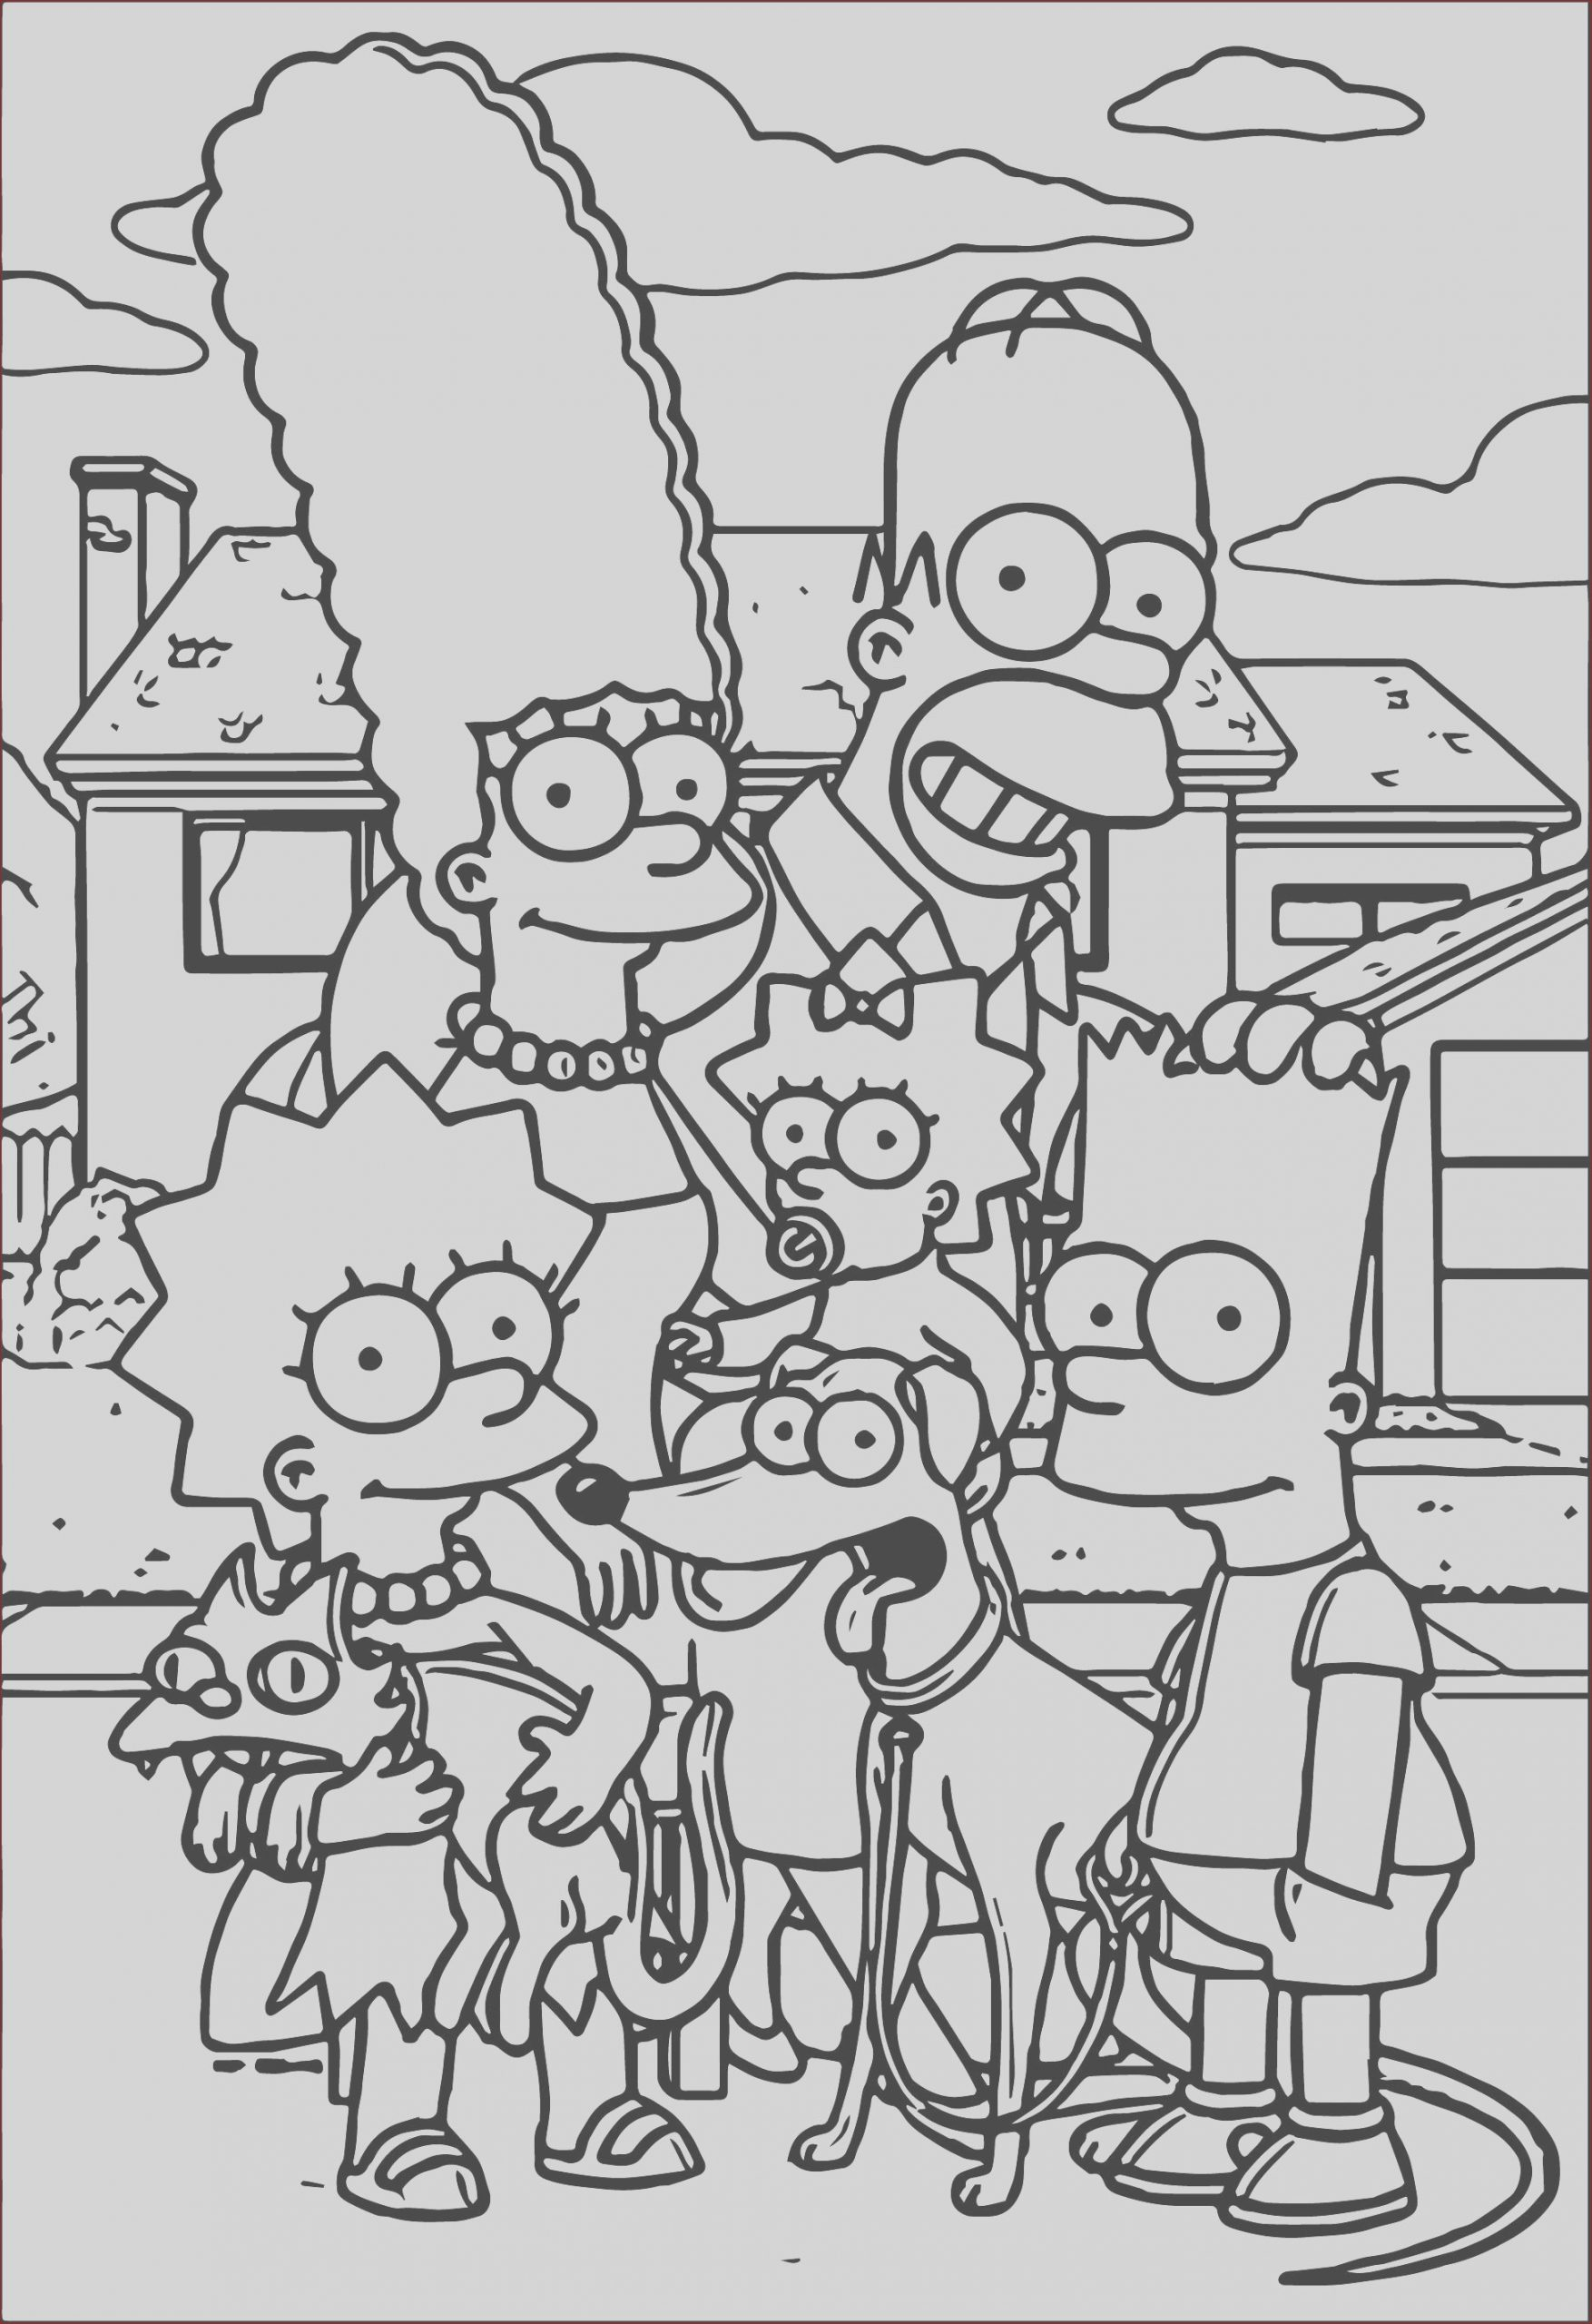 simpsons family street coloring page